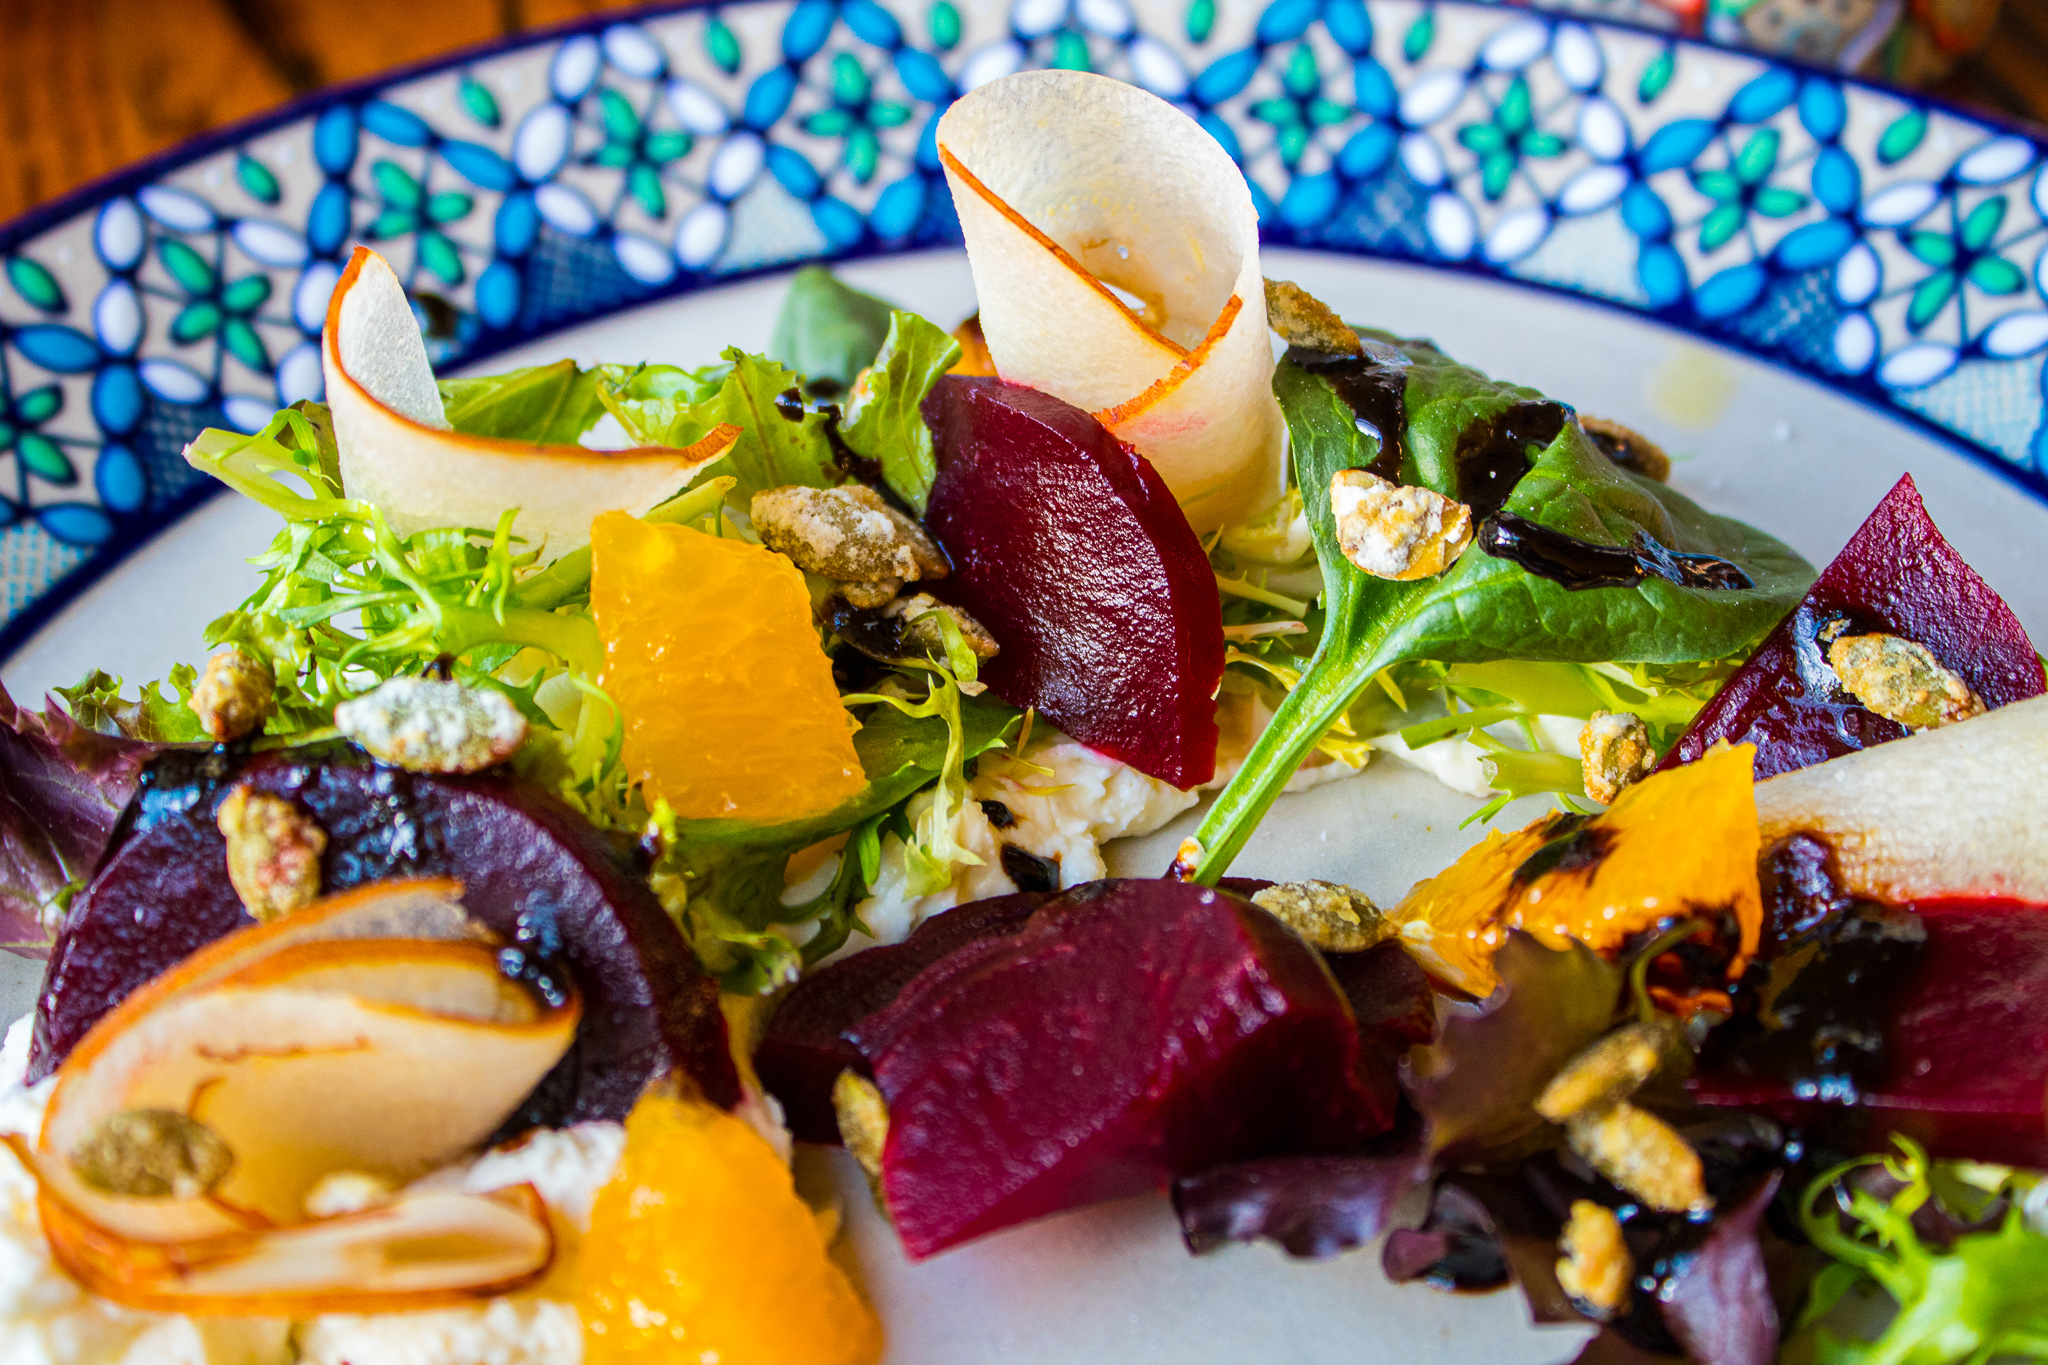 Roasted Beet Salad - Apple, Candied Pumpkin Seeds, Orange, Baby greens. Requeson & Tamarind-Balsamic Glaze